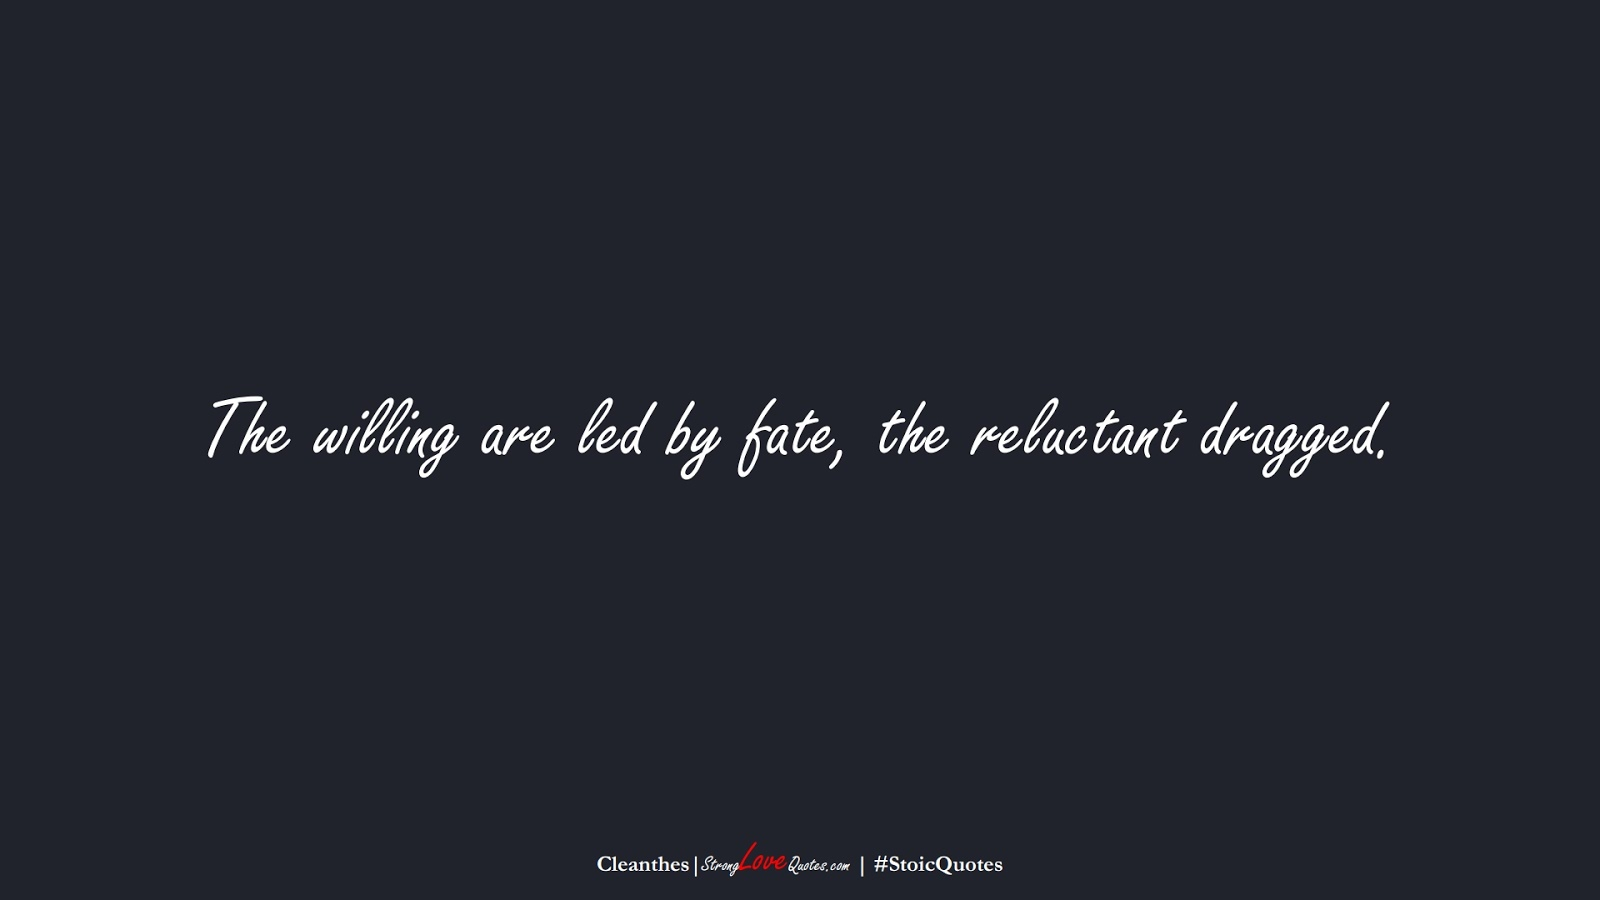 The willing are led by fate, the reluctant dragged. (Cleanthes);  #StoicQuotes